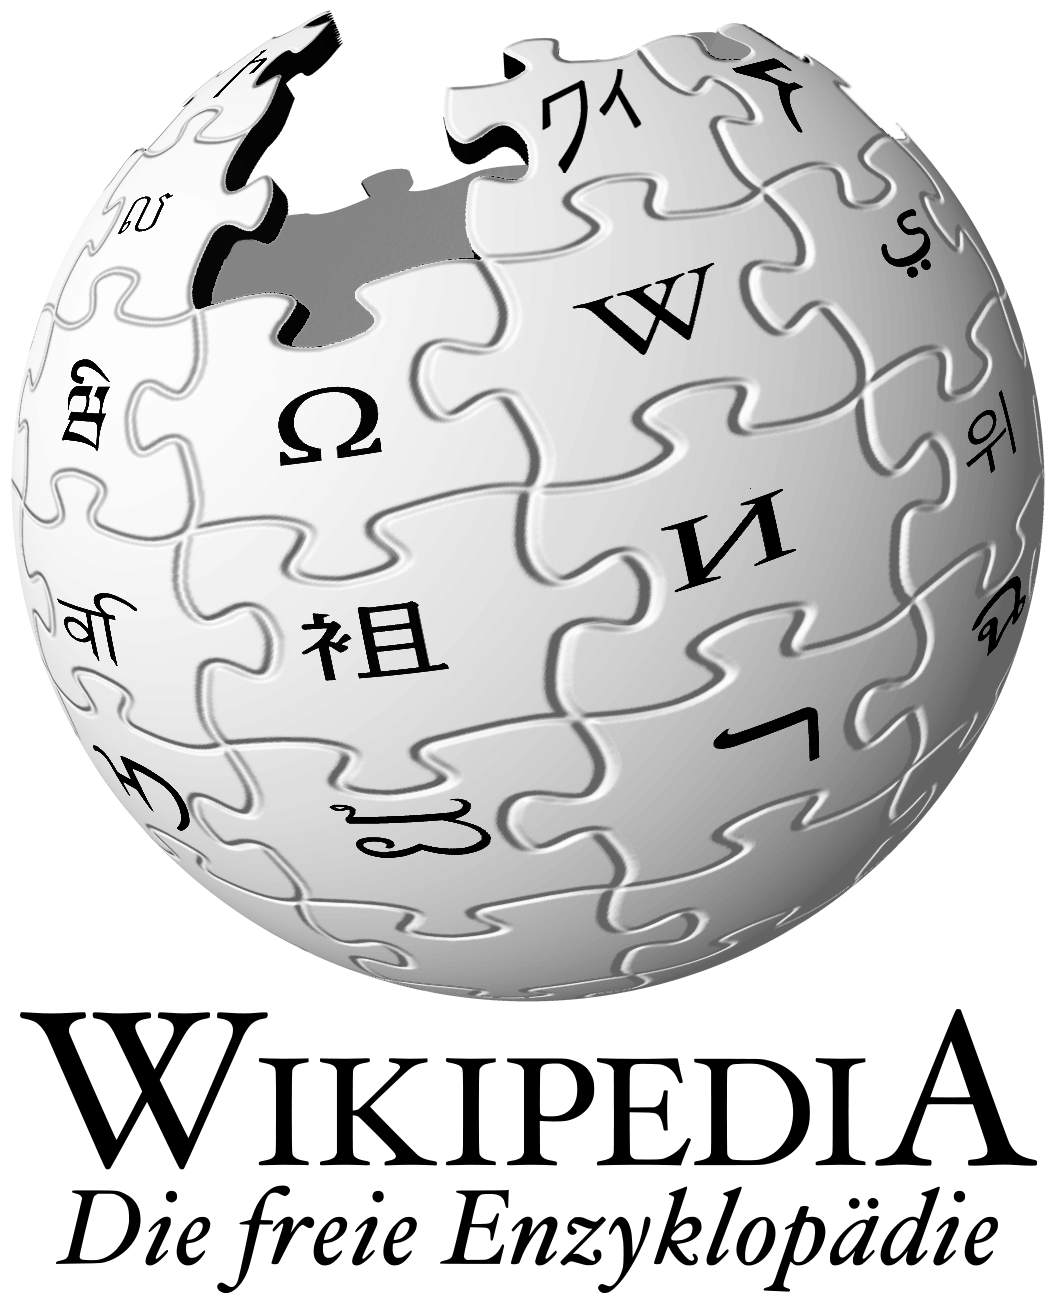 Wikipedia is a free online encyclopedia, created and edited by volunteers around the world and hosted by the Wikimedia Foundation.